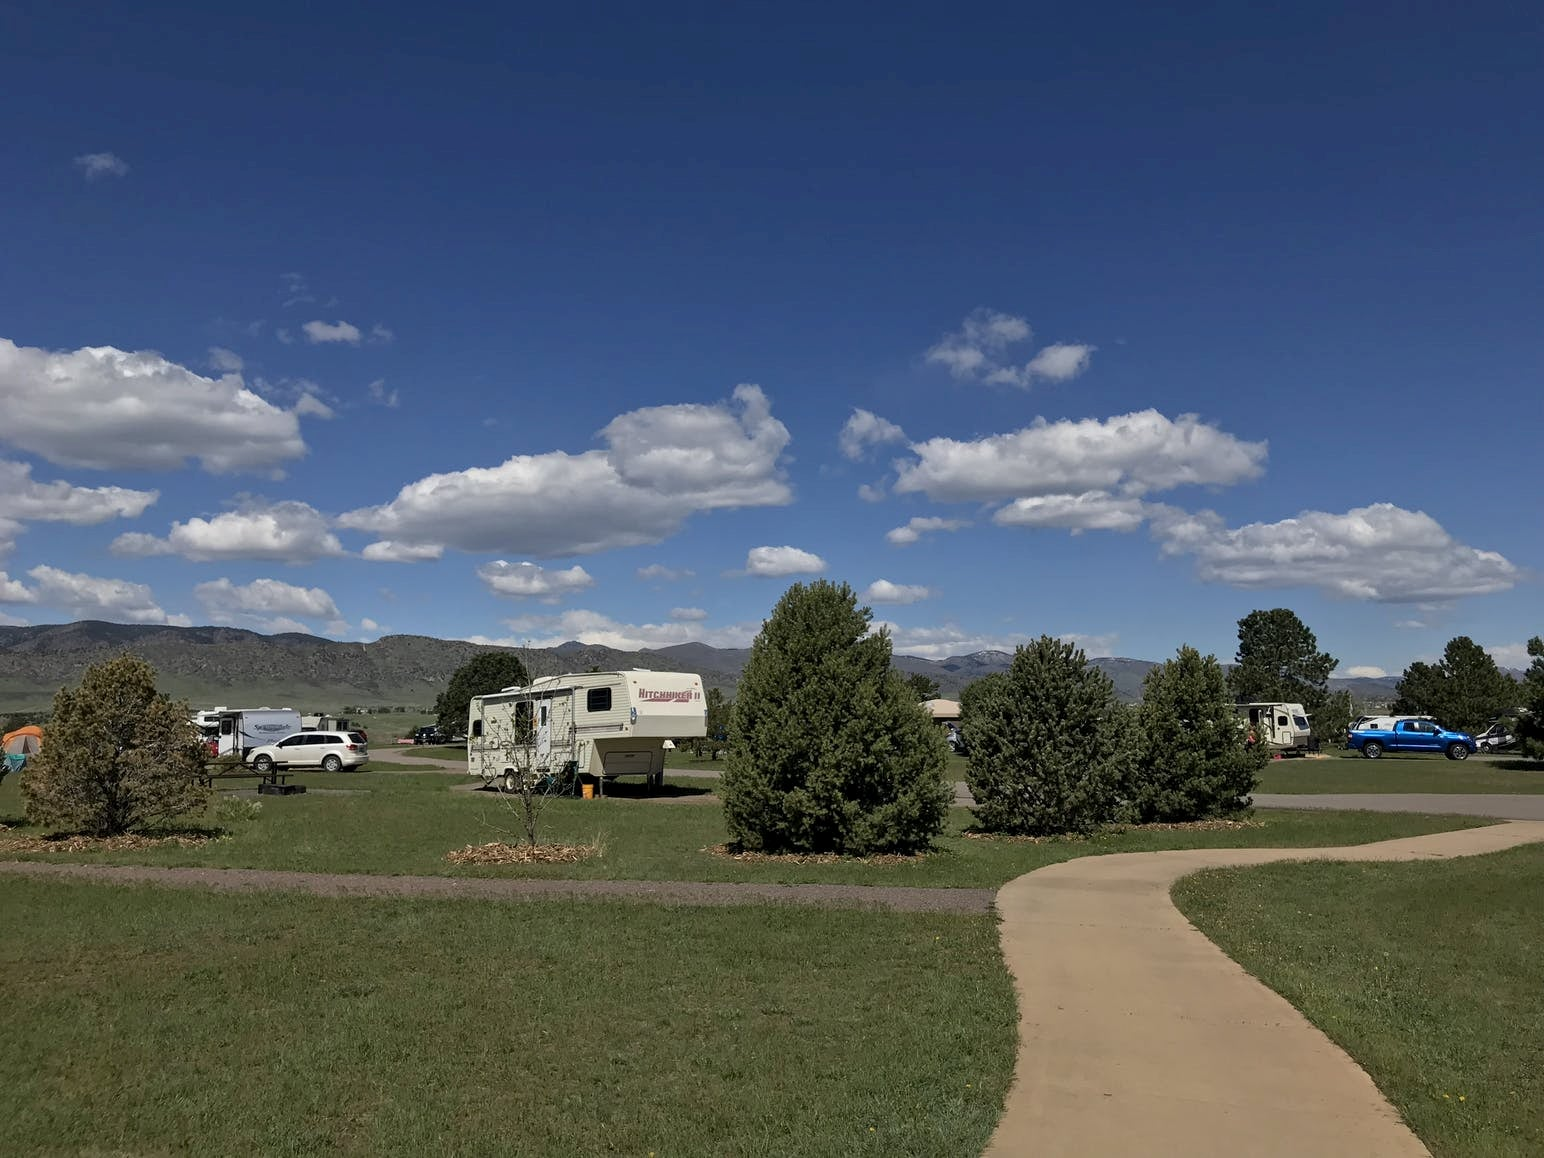 RV park surrounded by curving walkway and field of grass on a bluebird day.